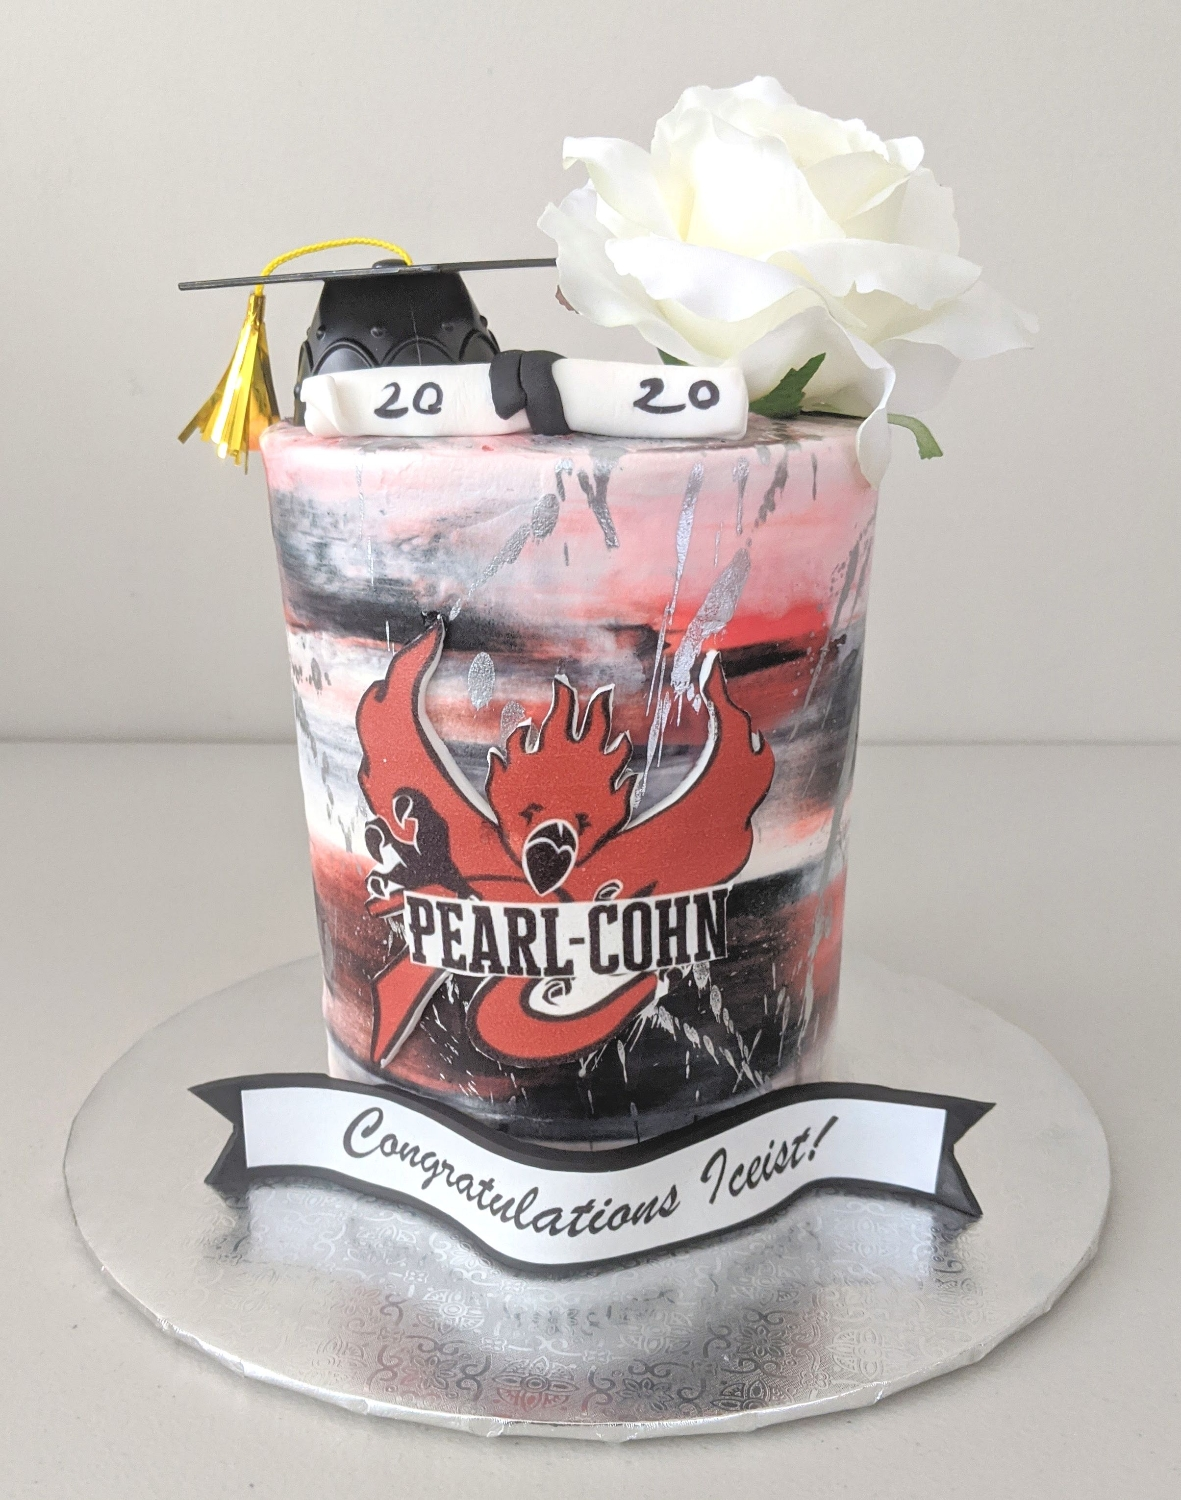 Pearl Cohn High School Graduation Cake